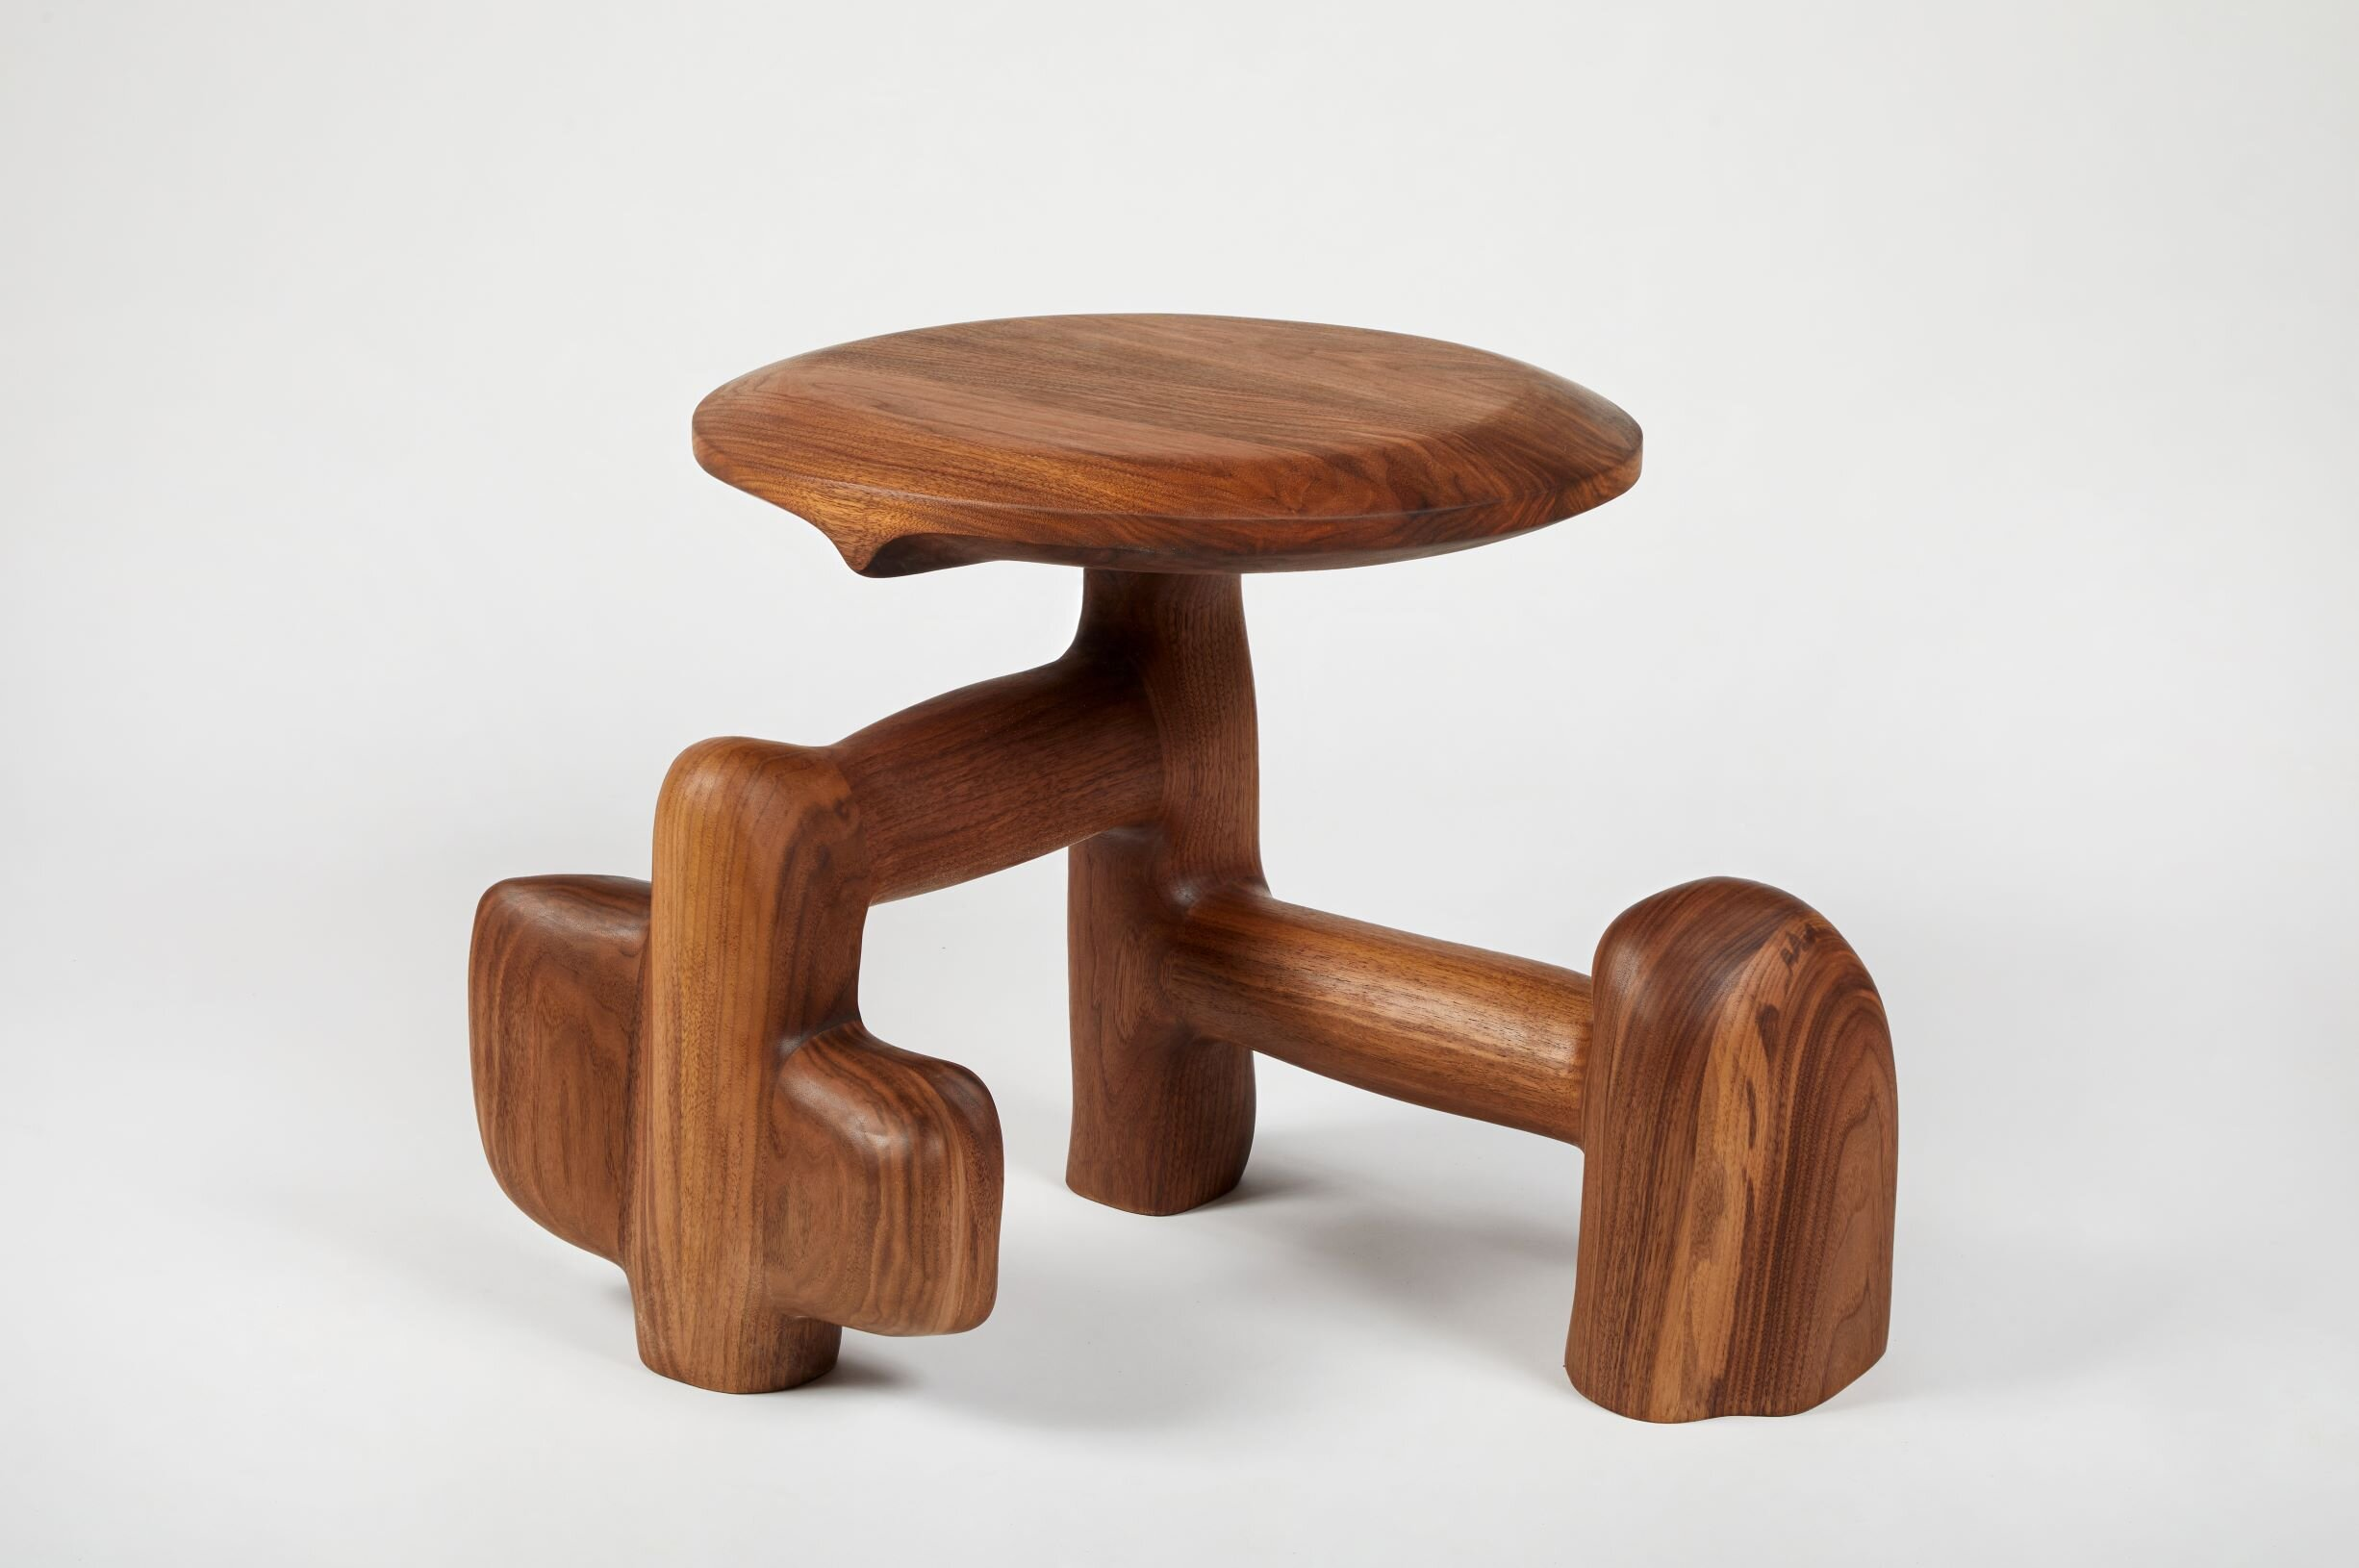 015_SculpturalSideTable_CMcCafferty_6